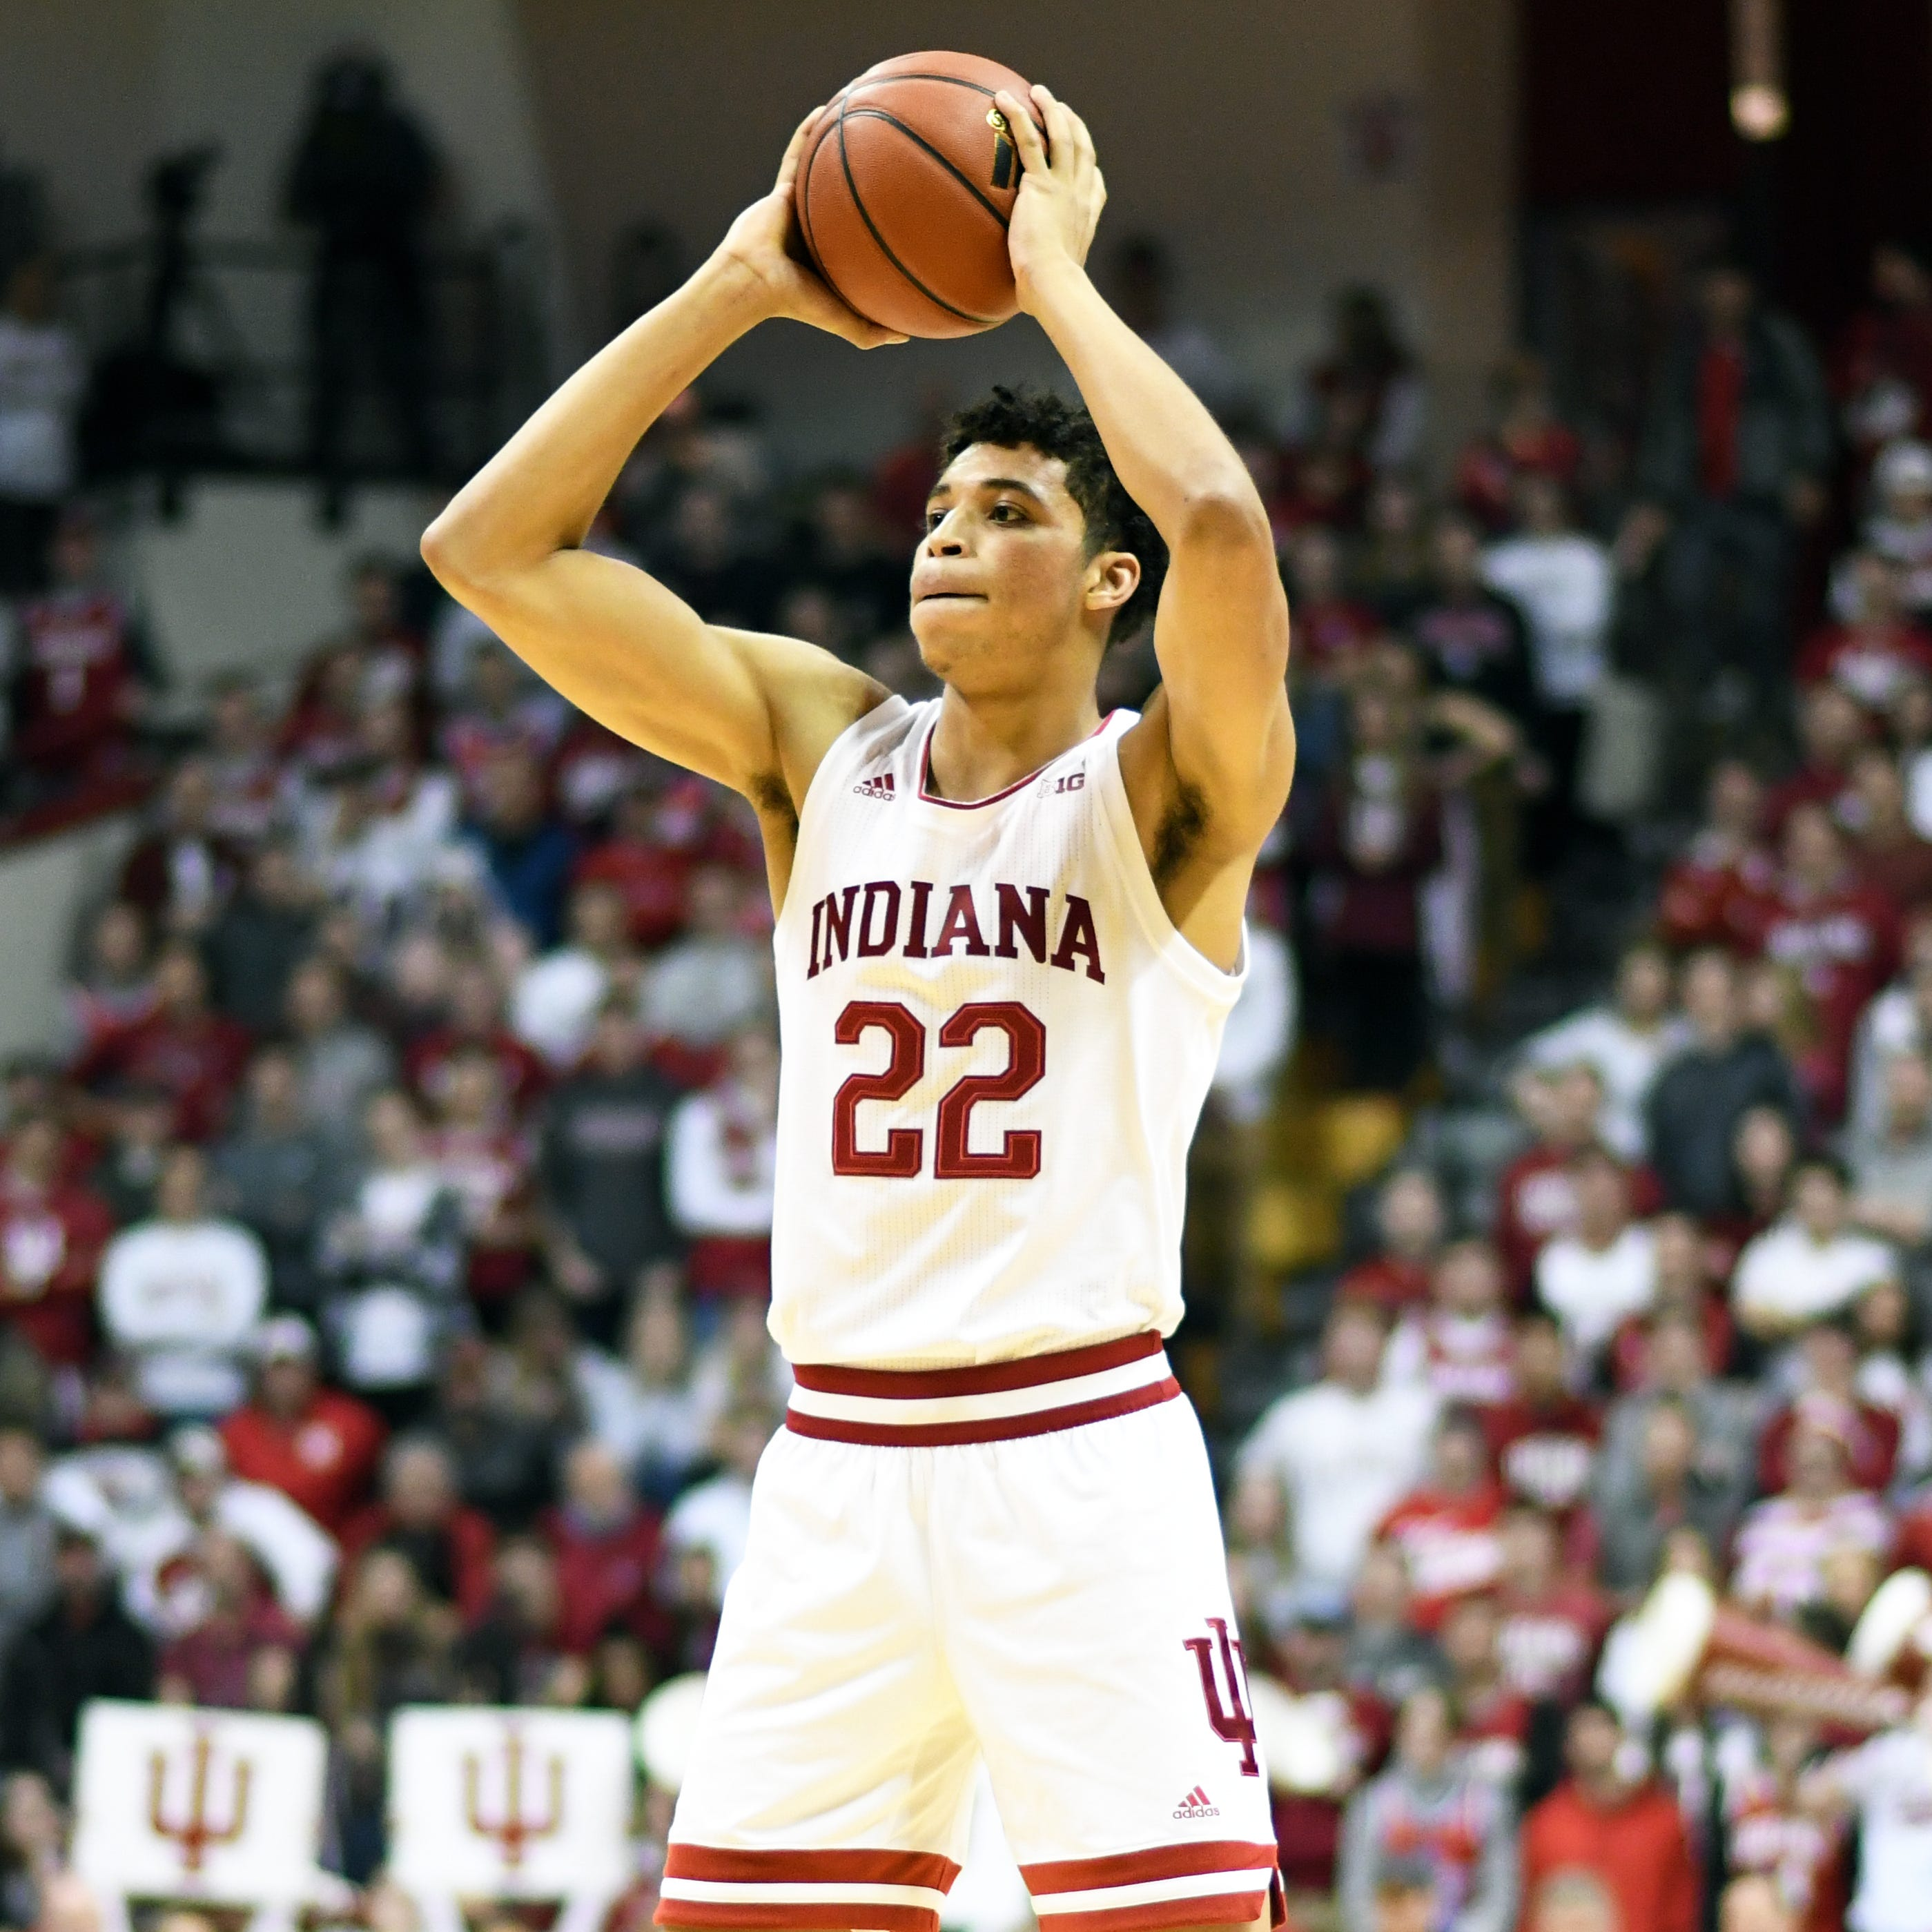 Clifton Moore to transfer from IU basketball after two years